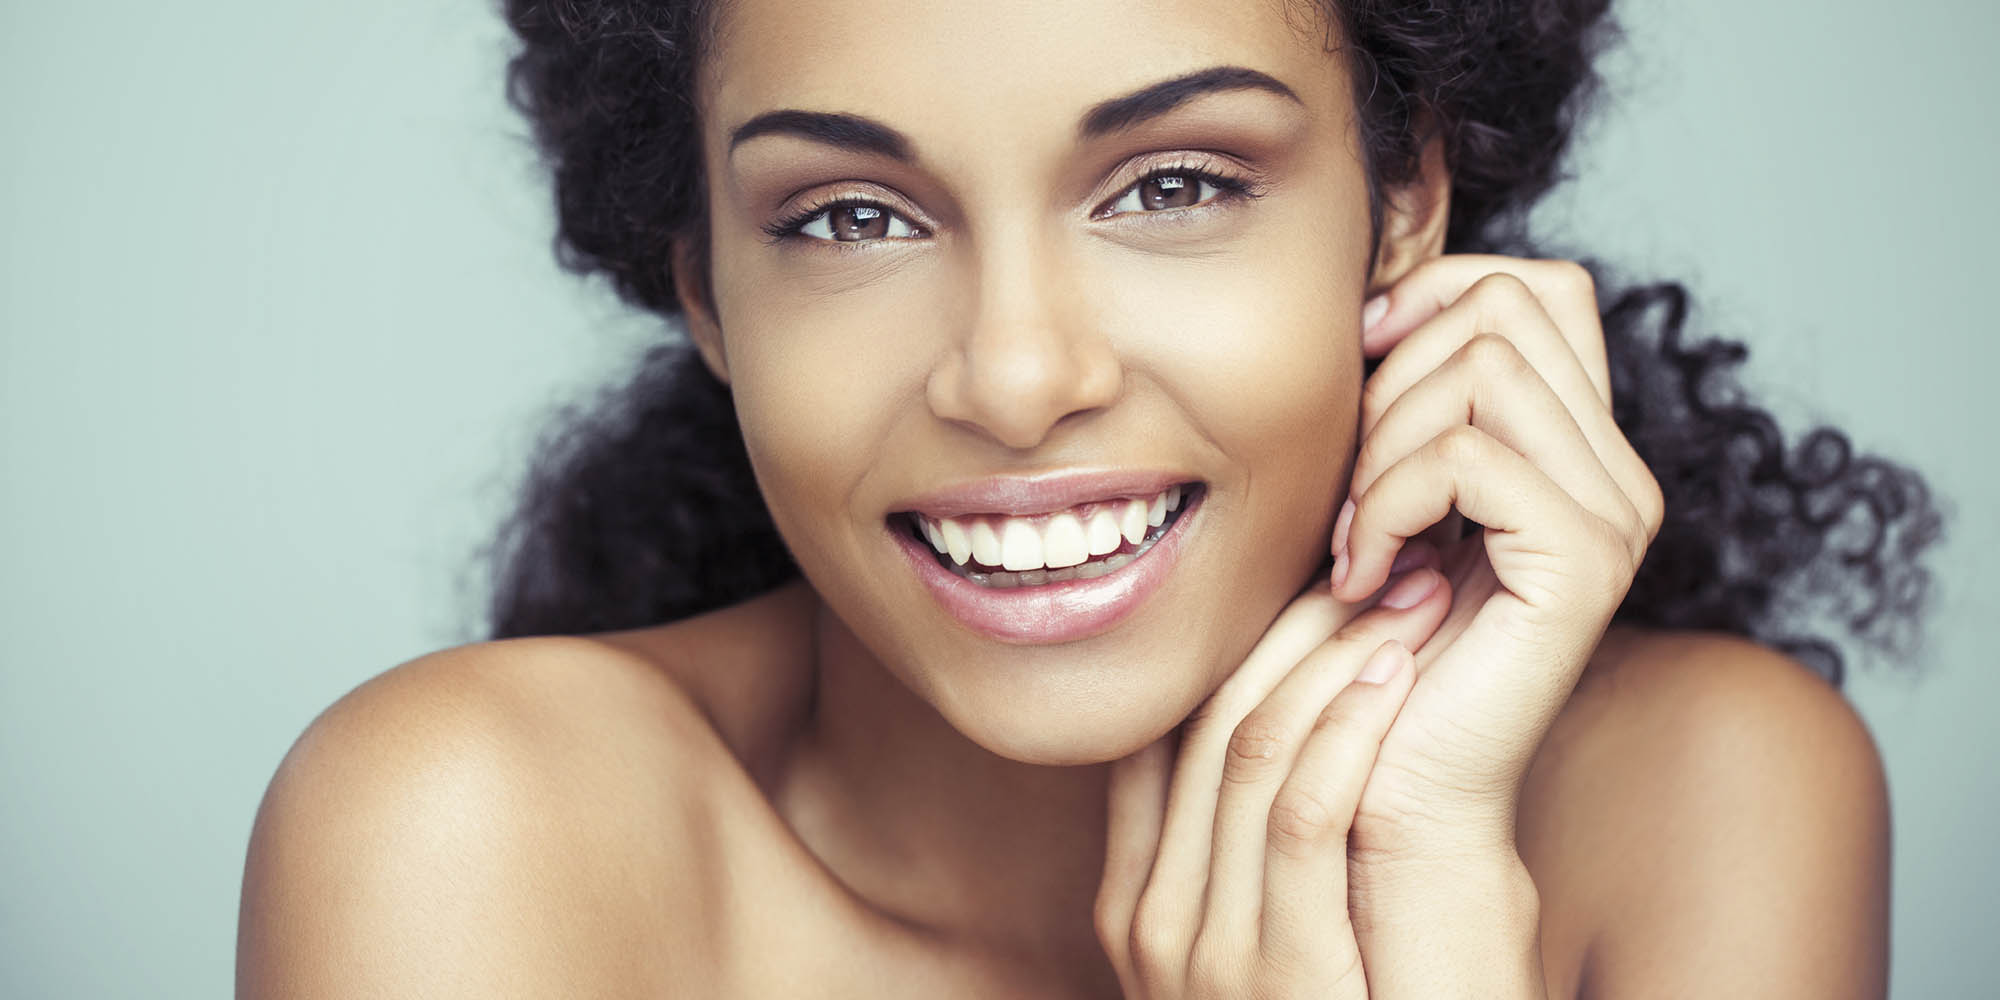 10 Great Foods for Your Skin